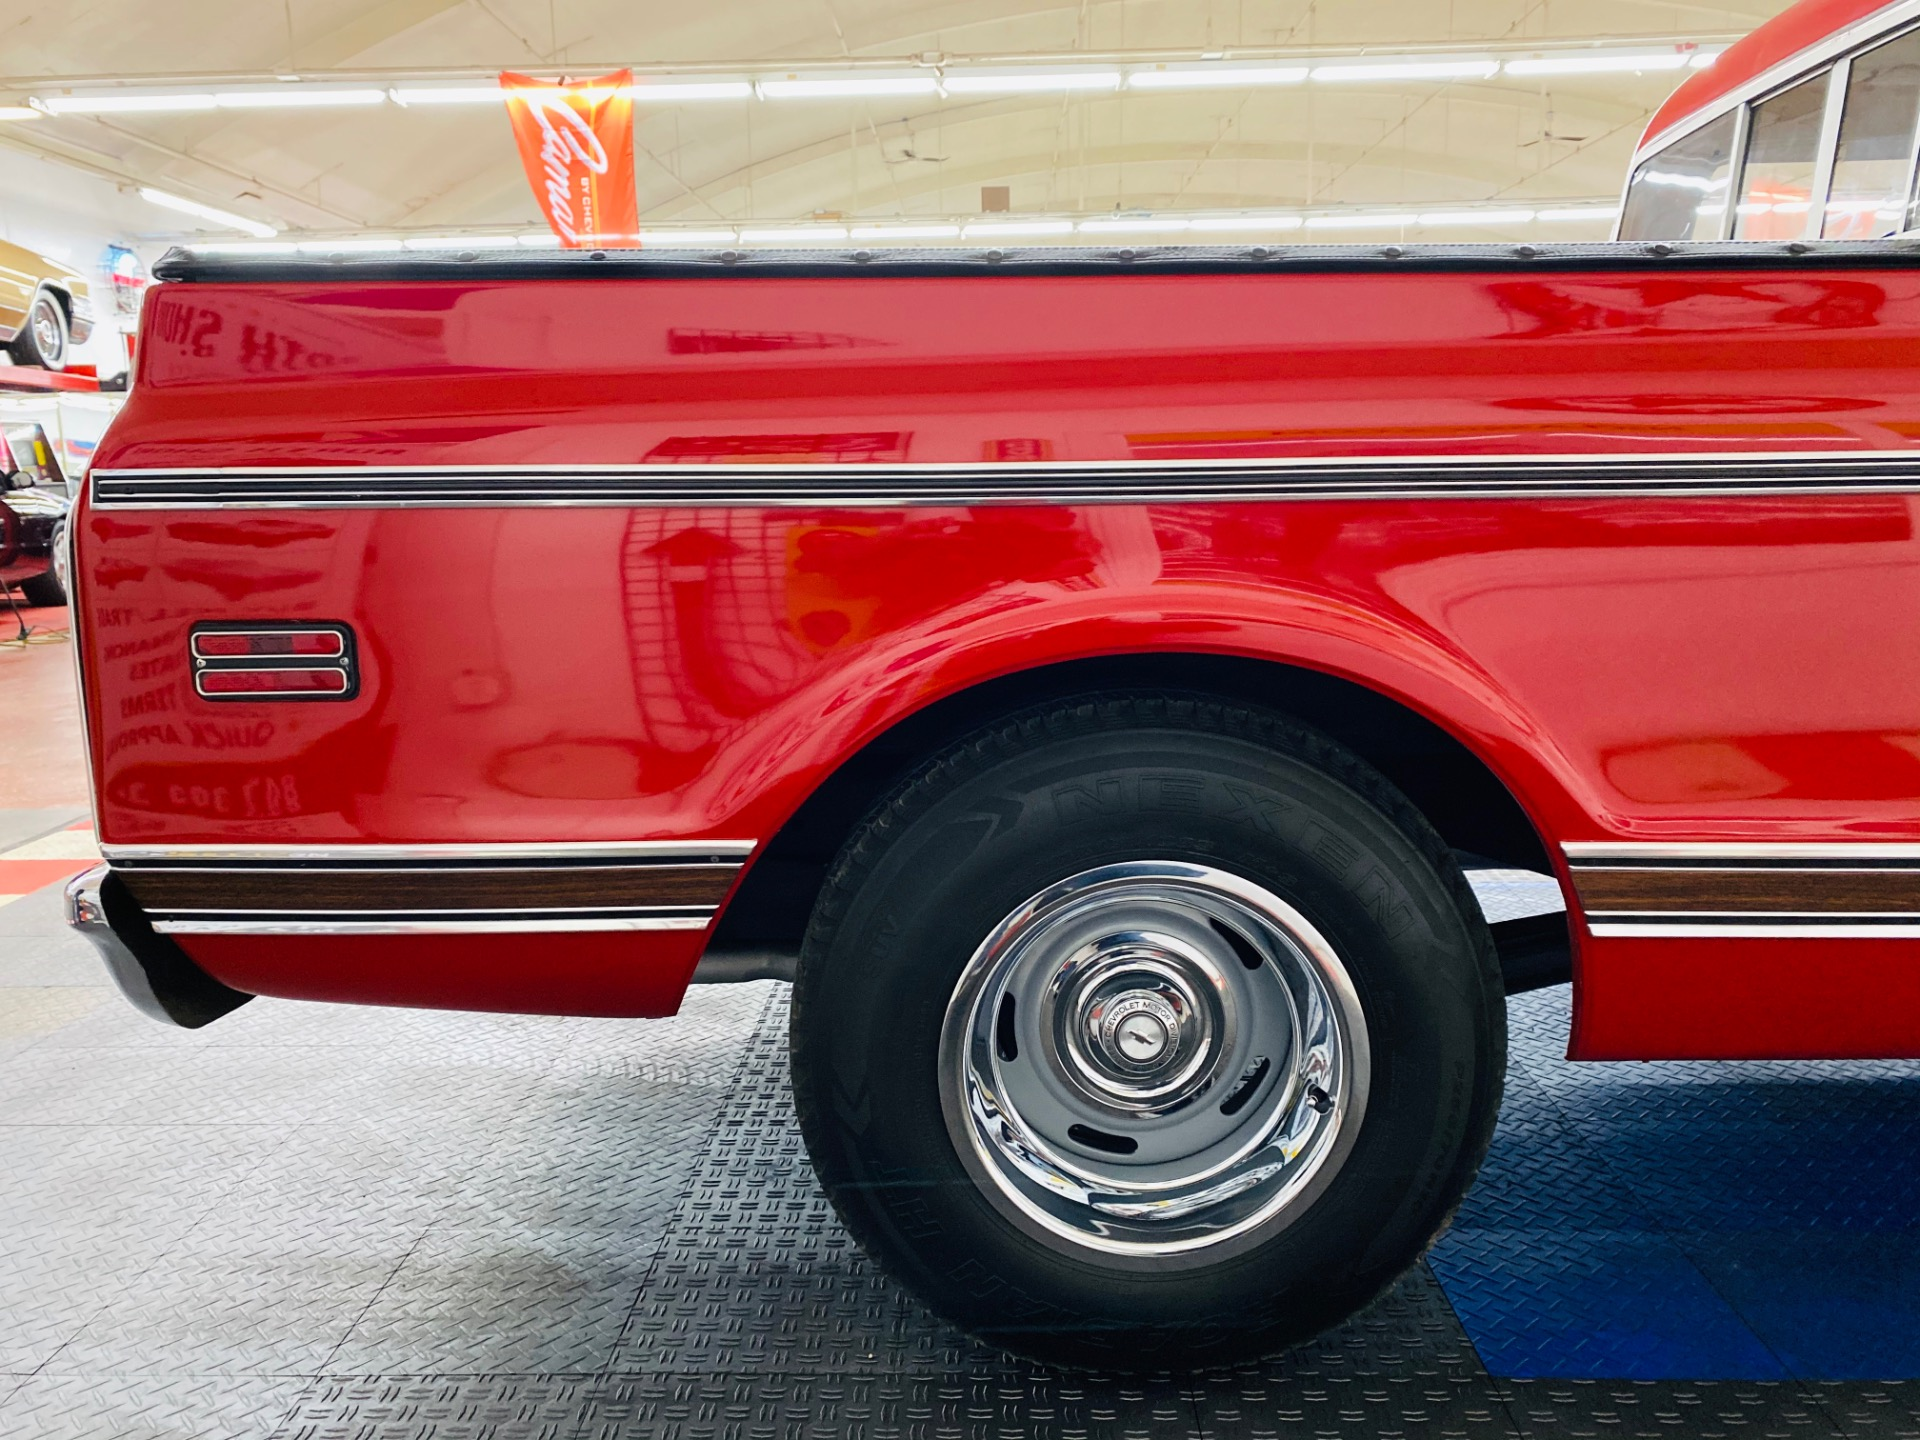 Used 1969 Chevrolet Pickup - C10 CHEYENNE - CLEAN SOUTHERN TRUCK - SEE VIDEO | Mundelein, IL